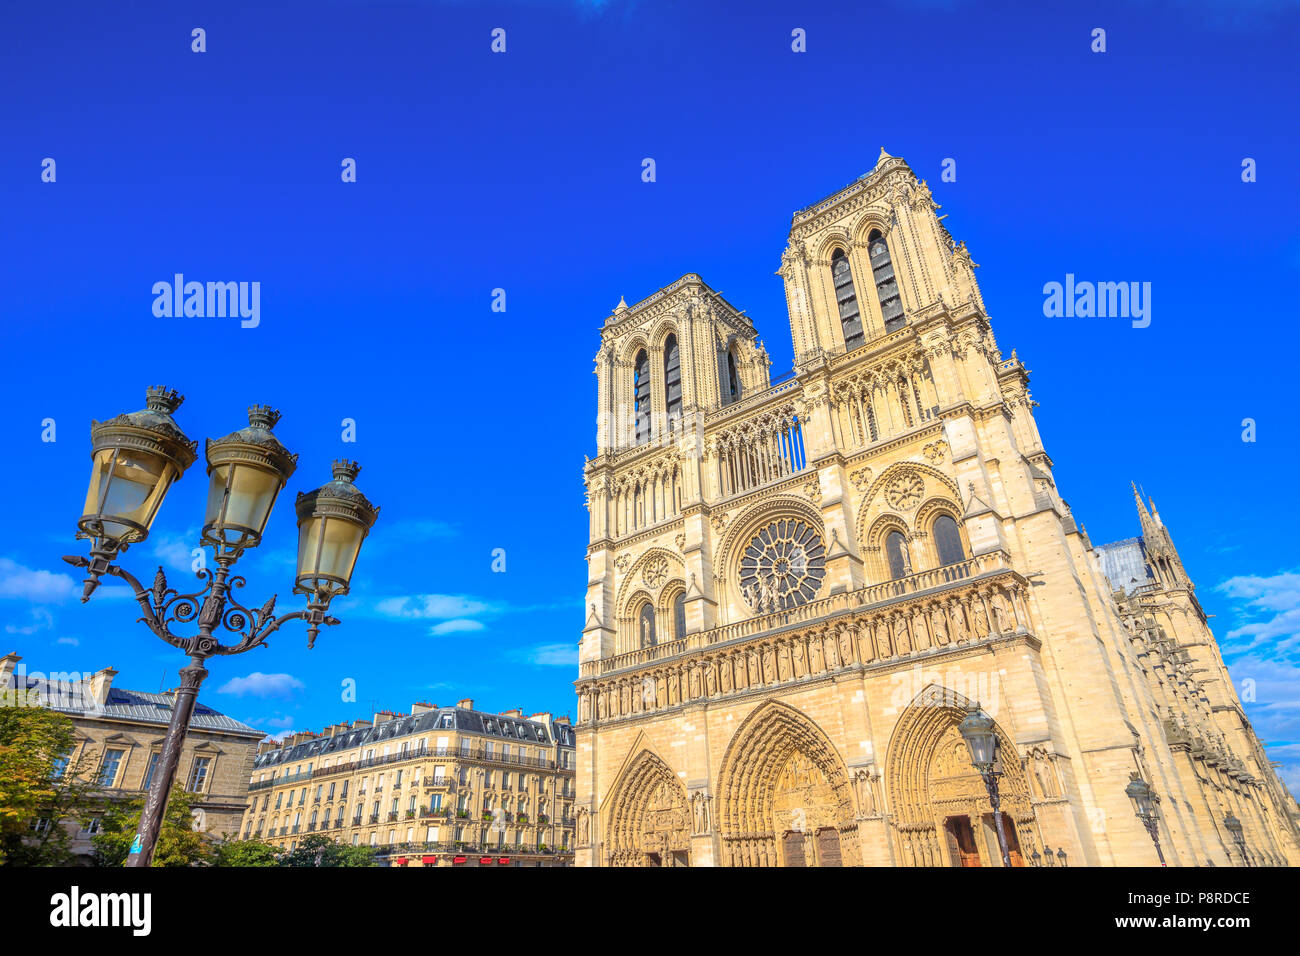 Typical iron street lamp with Notre Dame de Paris in the background, popular landmark and cathedral of the capital of France. Gothic French architecture of Our Lady of Paris in a sunny day, blue sky. - Stock Image